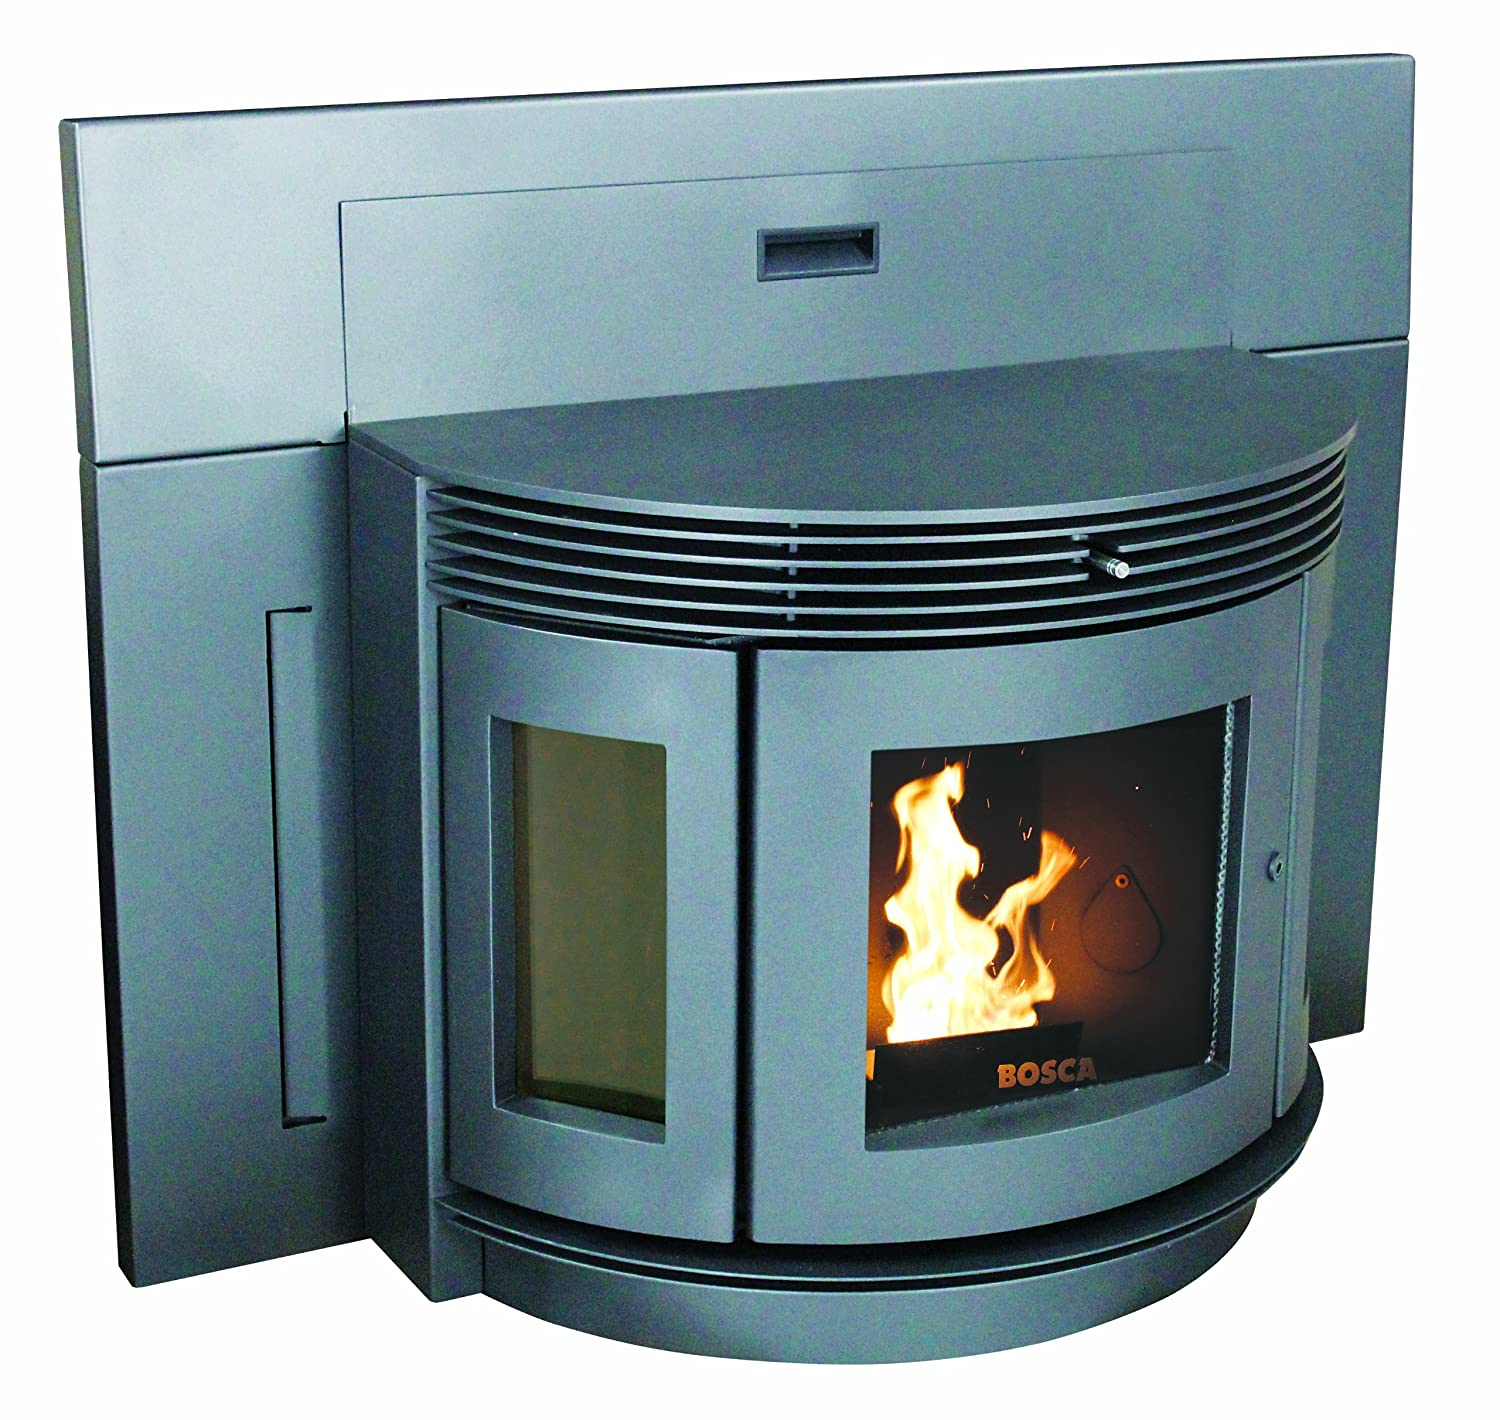 amazon com bosca bcps700i soul 700 pellet stove home u0026 kitchen